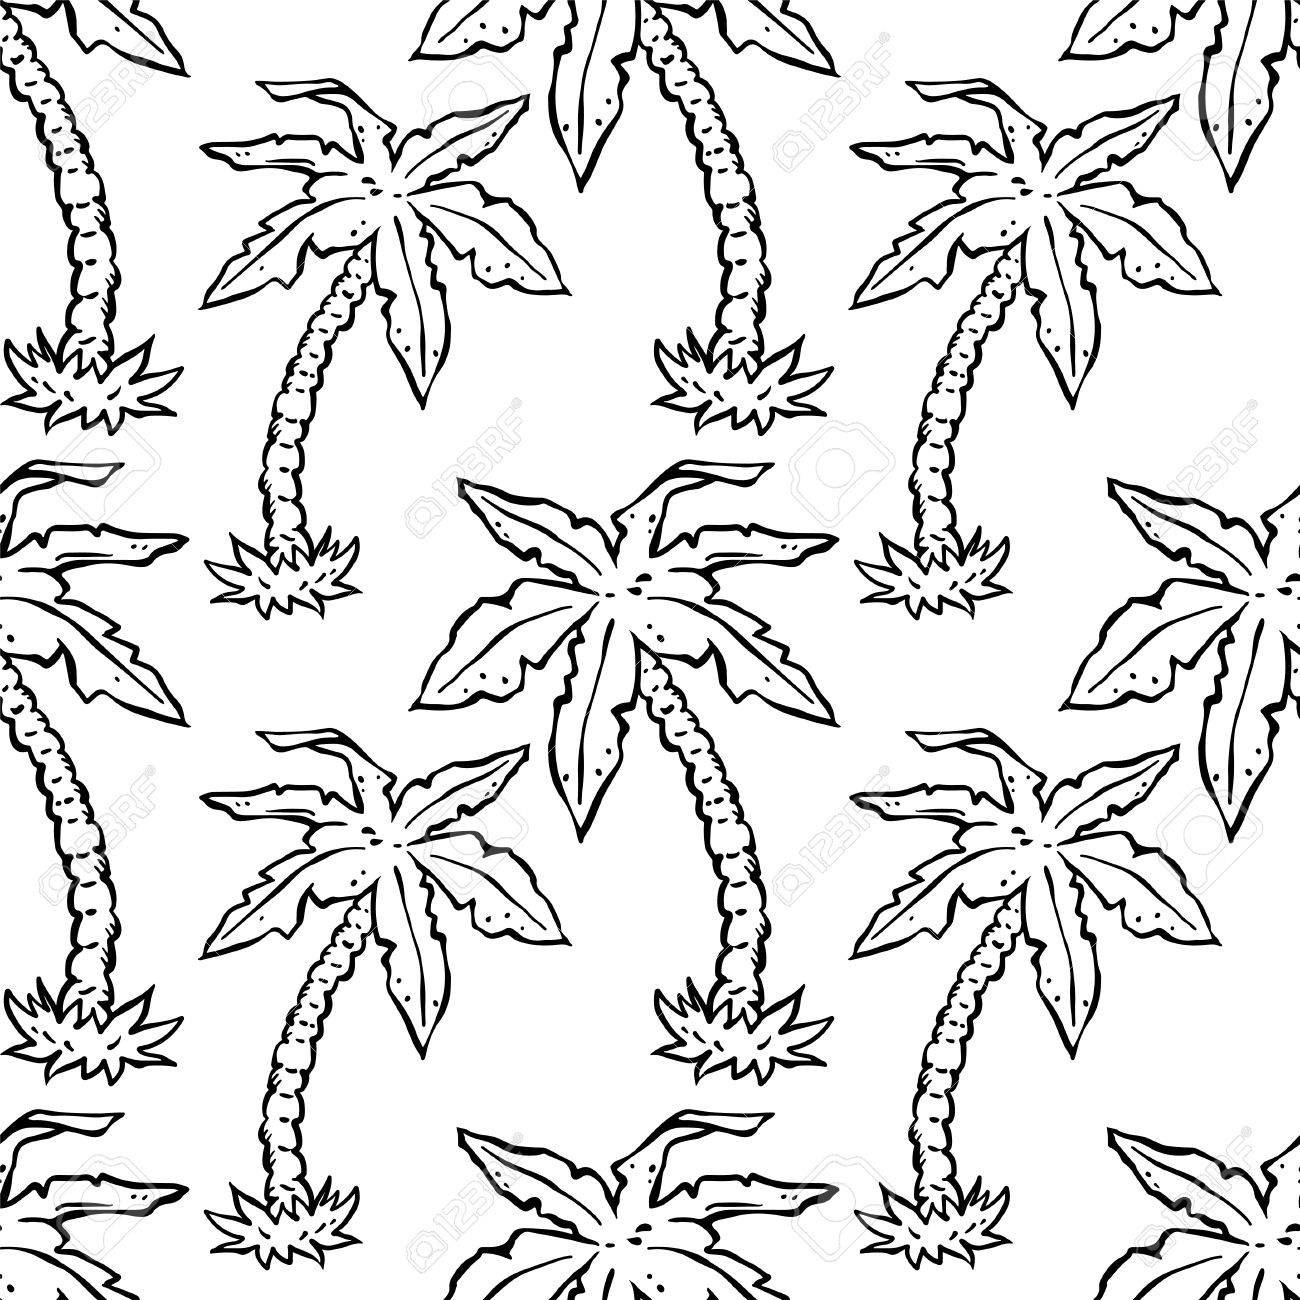 Wallpaper abstract seamless pattern with cartoon tropical coconut palm trees in black and white floral monochrome